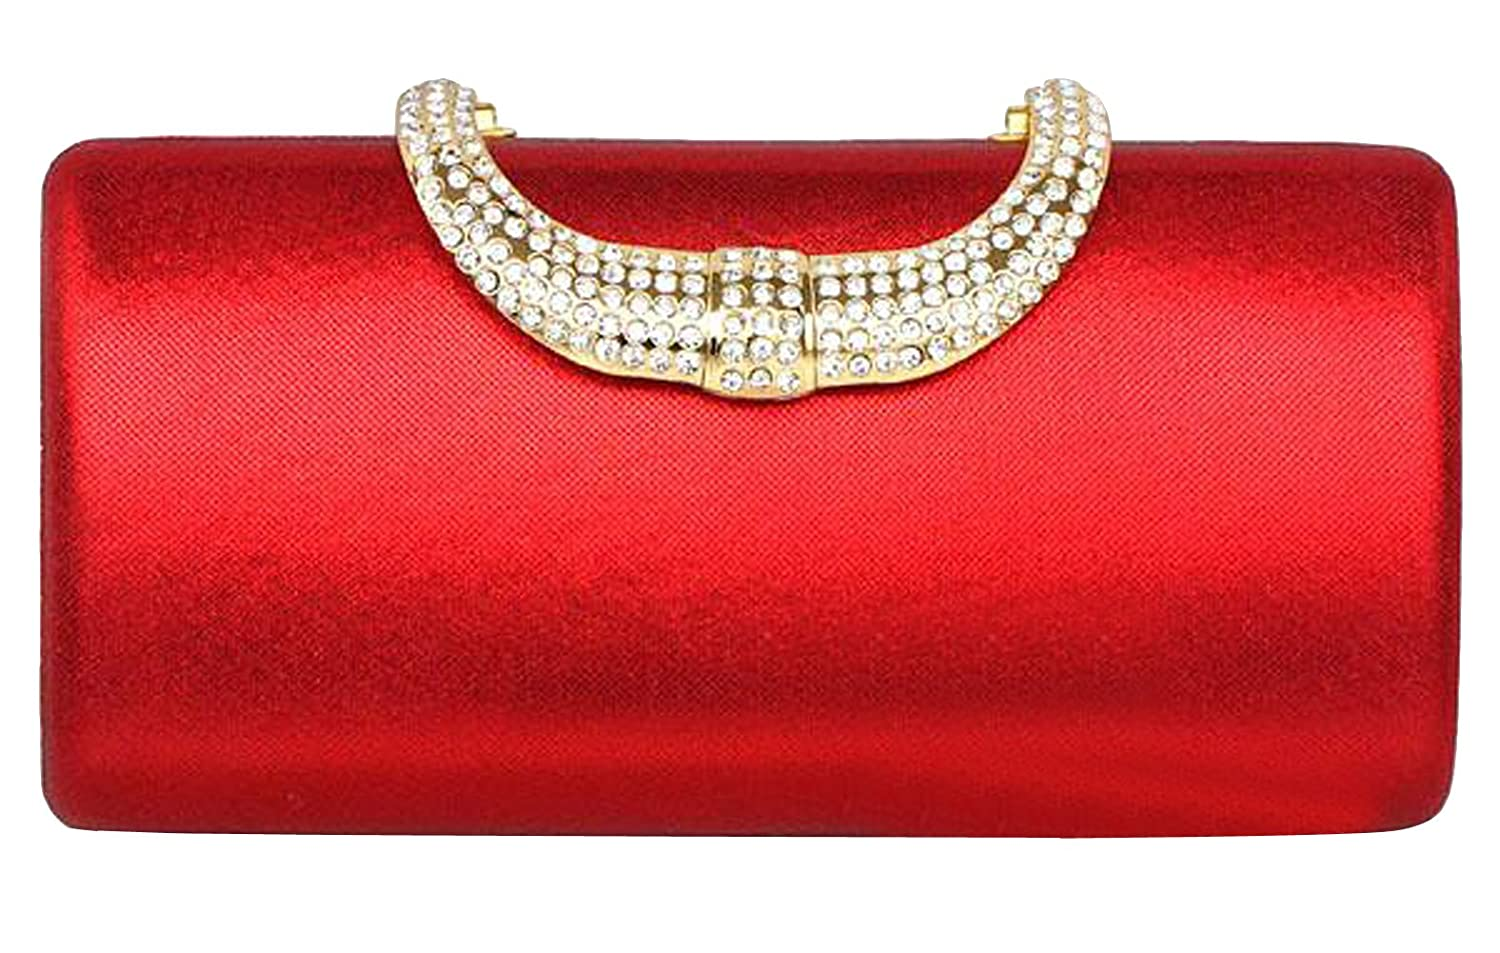 Stylebek Women's Solid Color Rhinestone Clutch Bag Red One Size